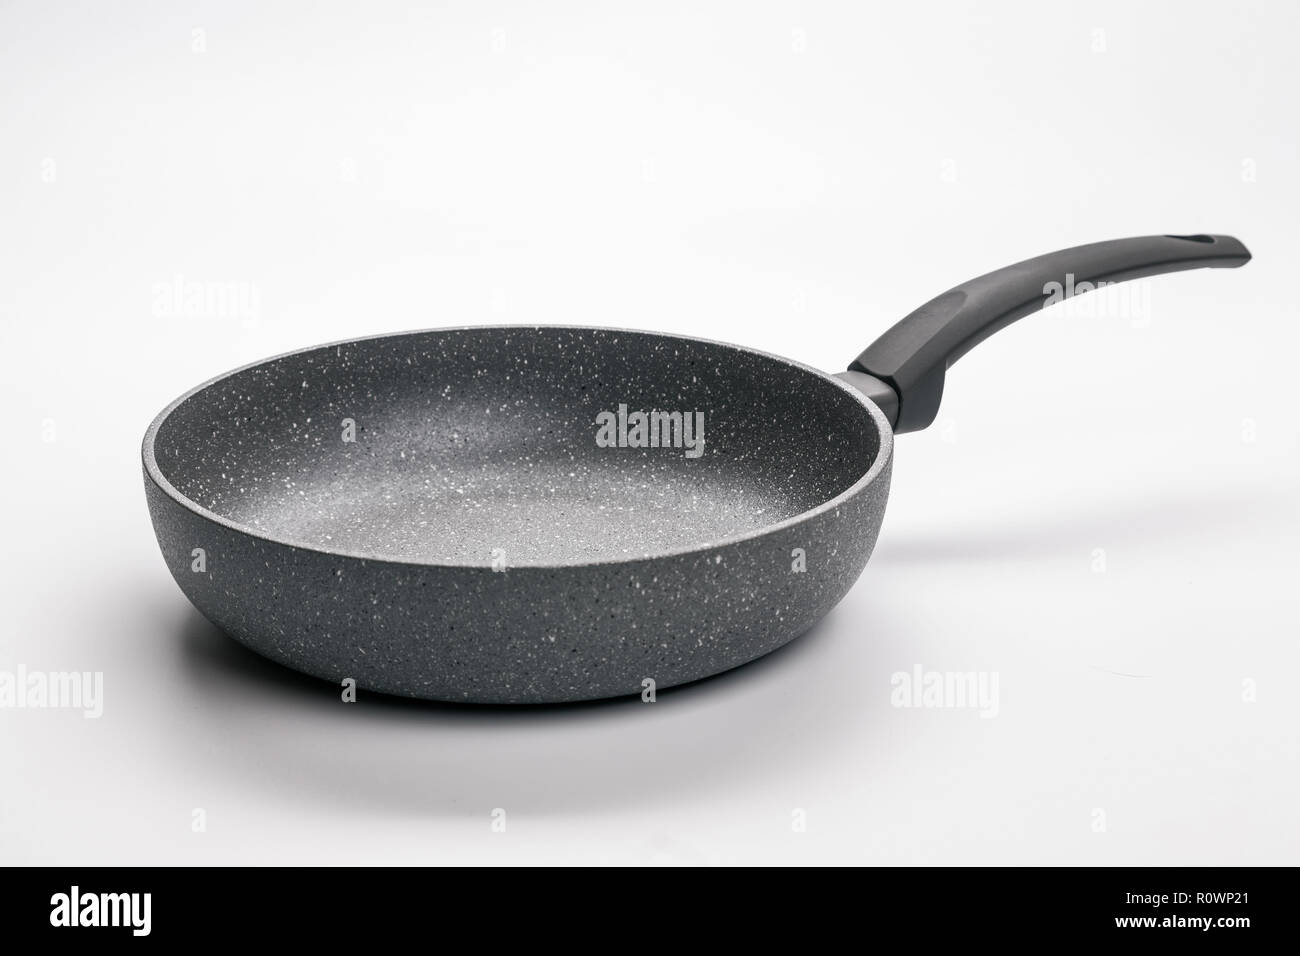 Stone Frying Pan Isolated on White Background. Angle View. Stock Photo